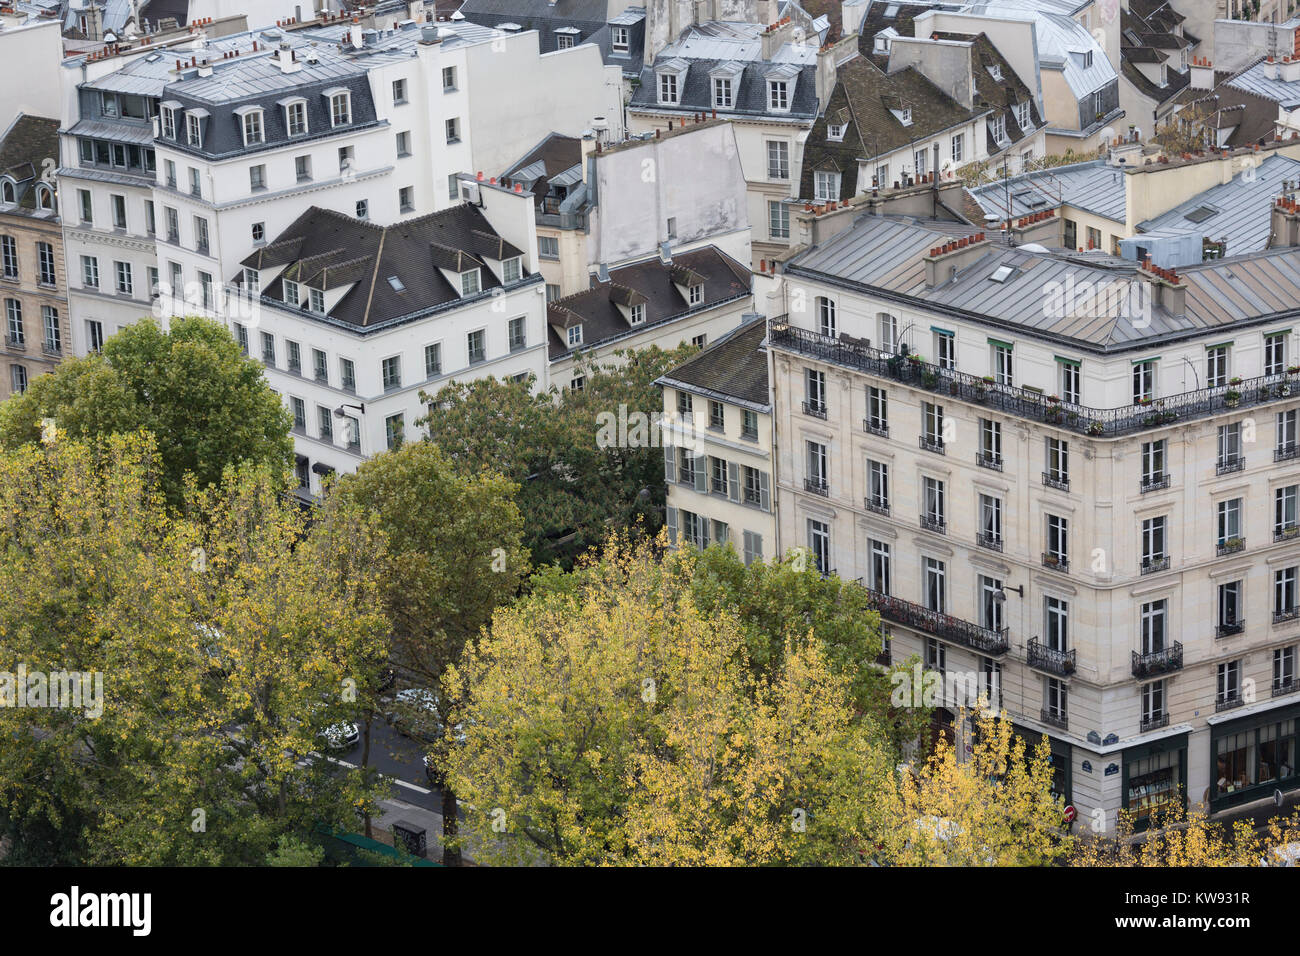 France, Paris, roof tops of houses in the 5th arrondissement - Stock Image